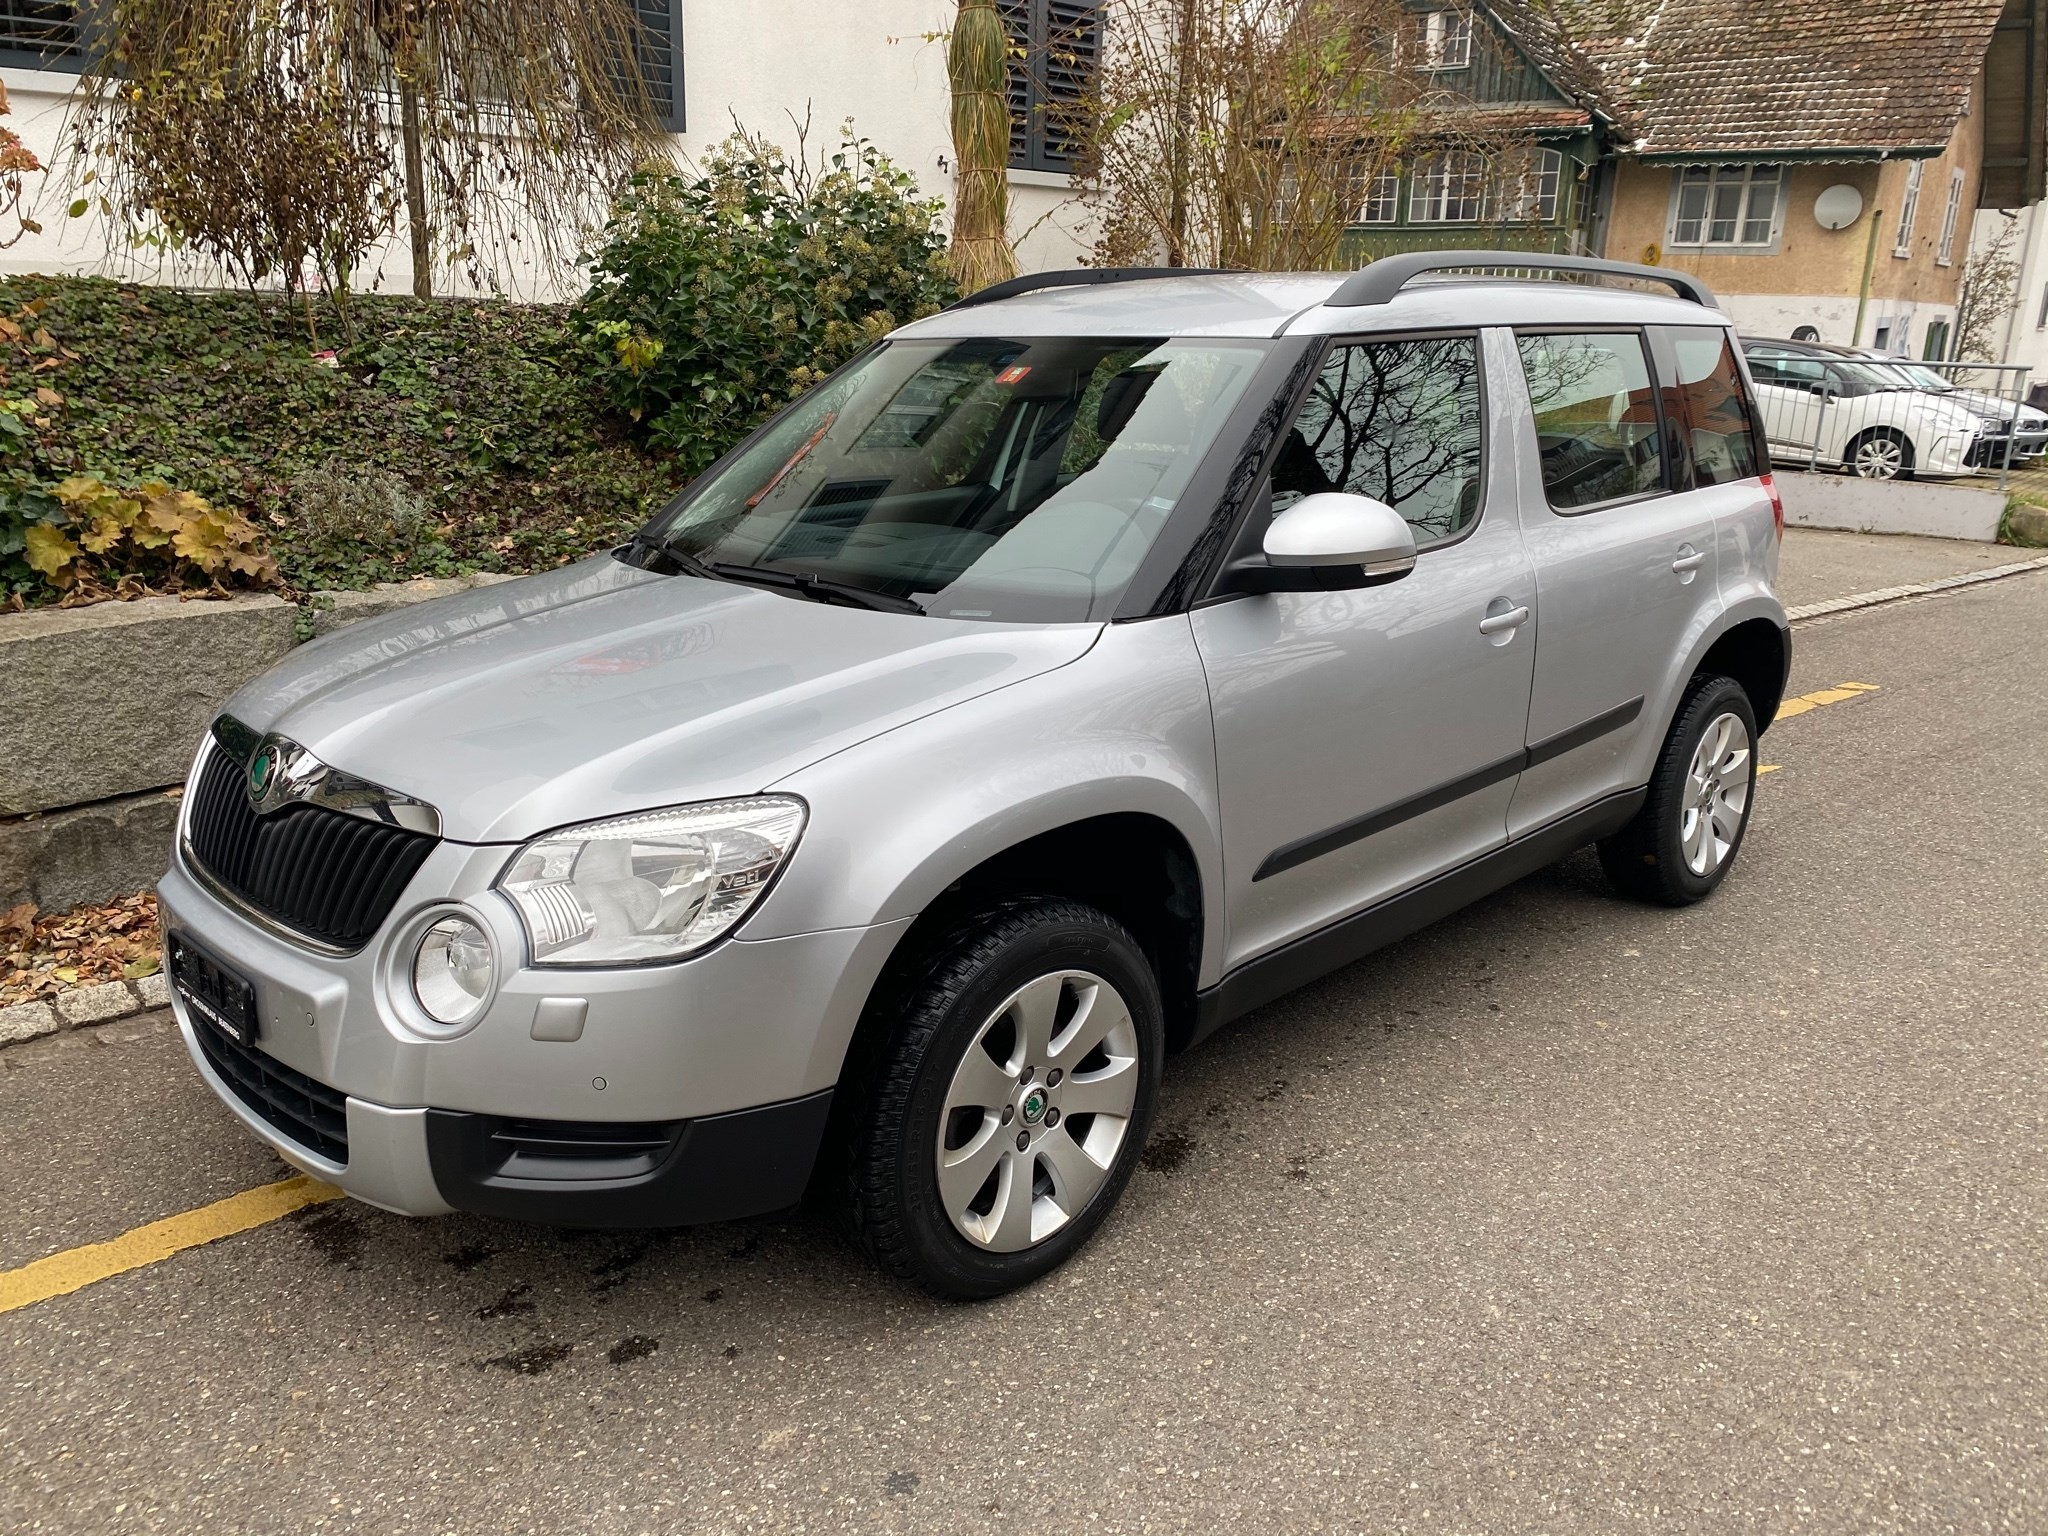 Buy Suv Skoda Yeti 2 0 Tdi Alldrive 4x4 Dsg 120000 Km At 9450 Chf On Carforyou Ch